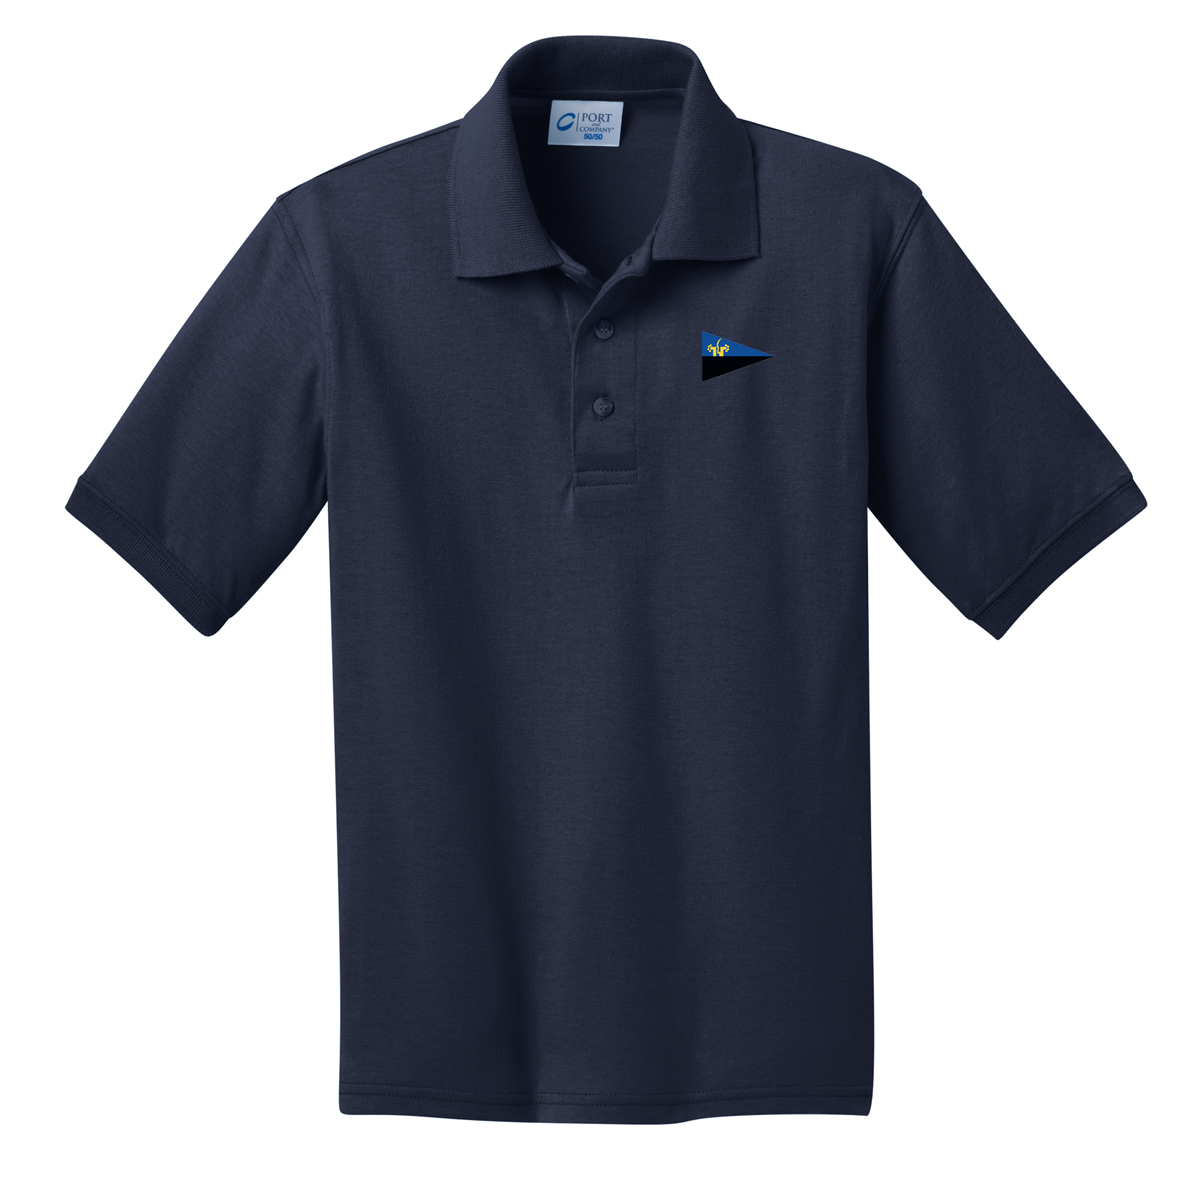 Mudratz Youth Cotton Polo